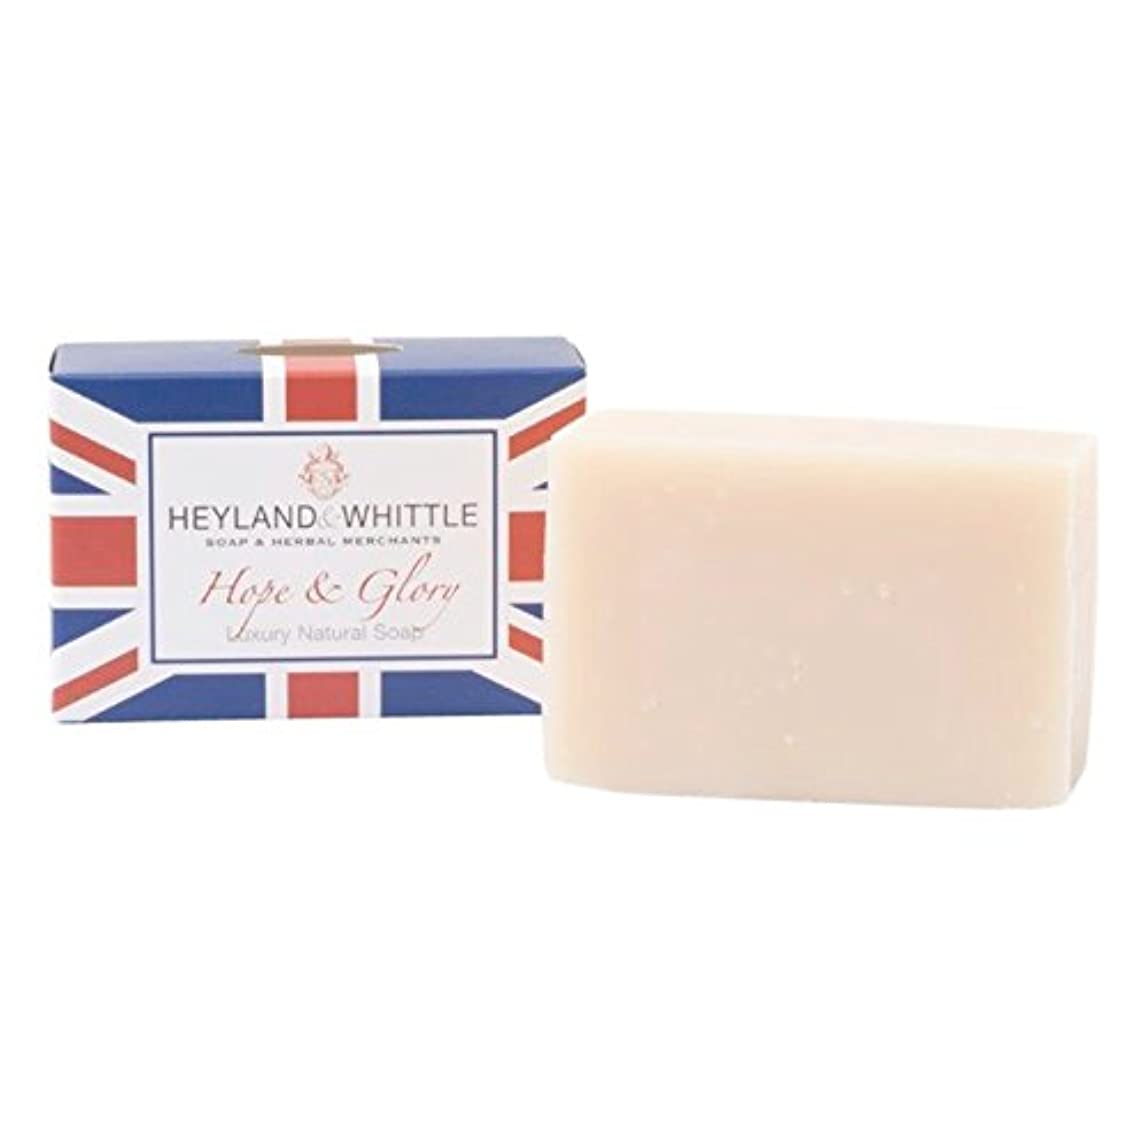 Heyland&削る希望と栄光の石鹸 (Heyland & Whittle) (x6) - Heyland & Whittle Hope and Glory Soap Bar (Pack of 6) [並行輸入品]